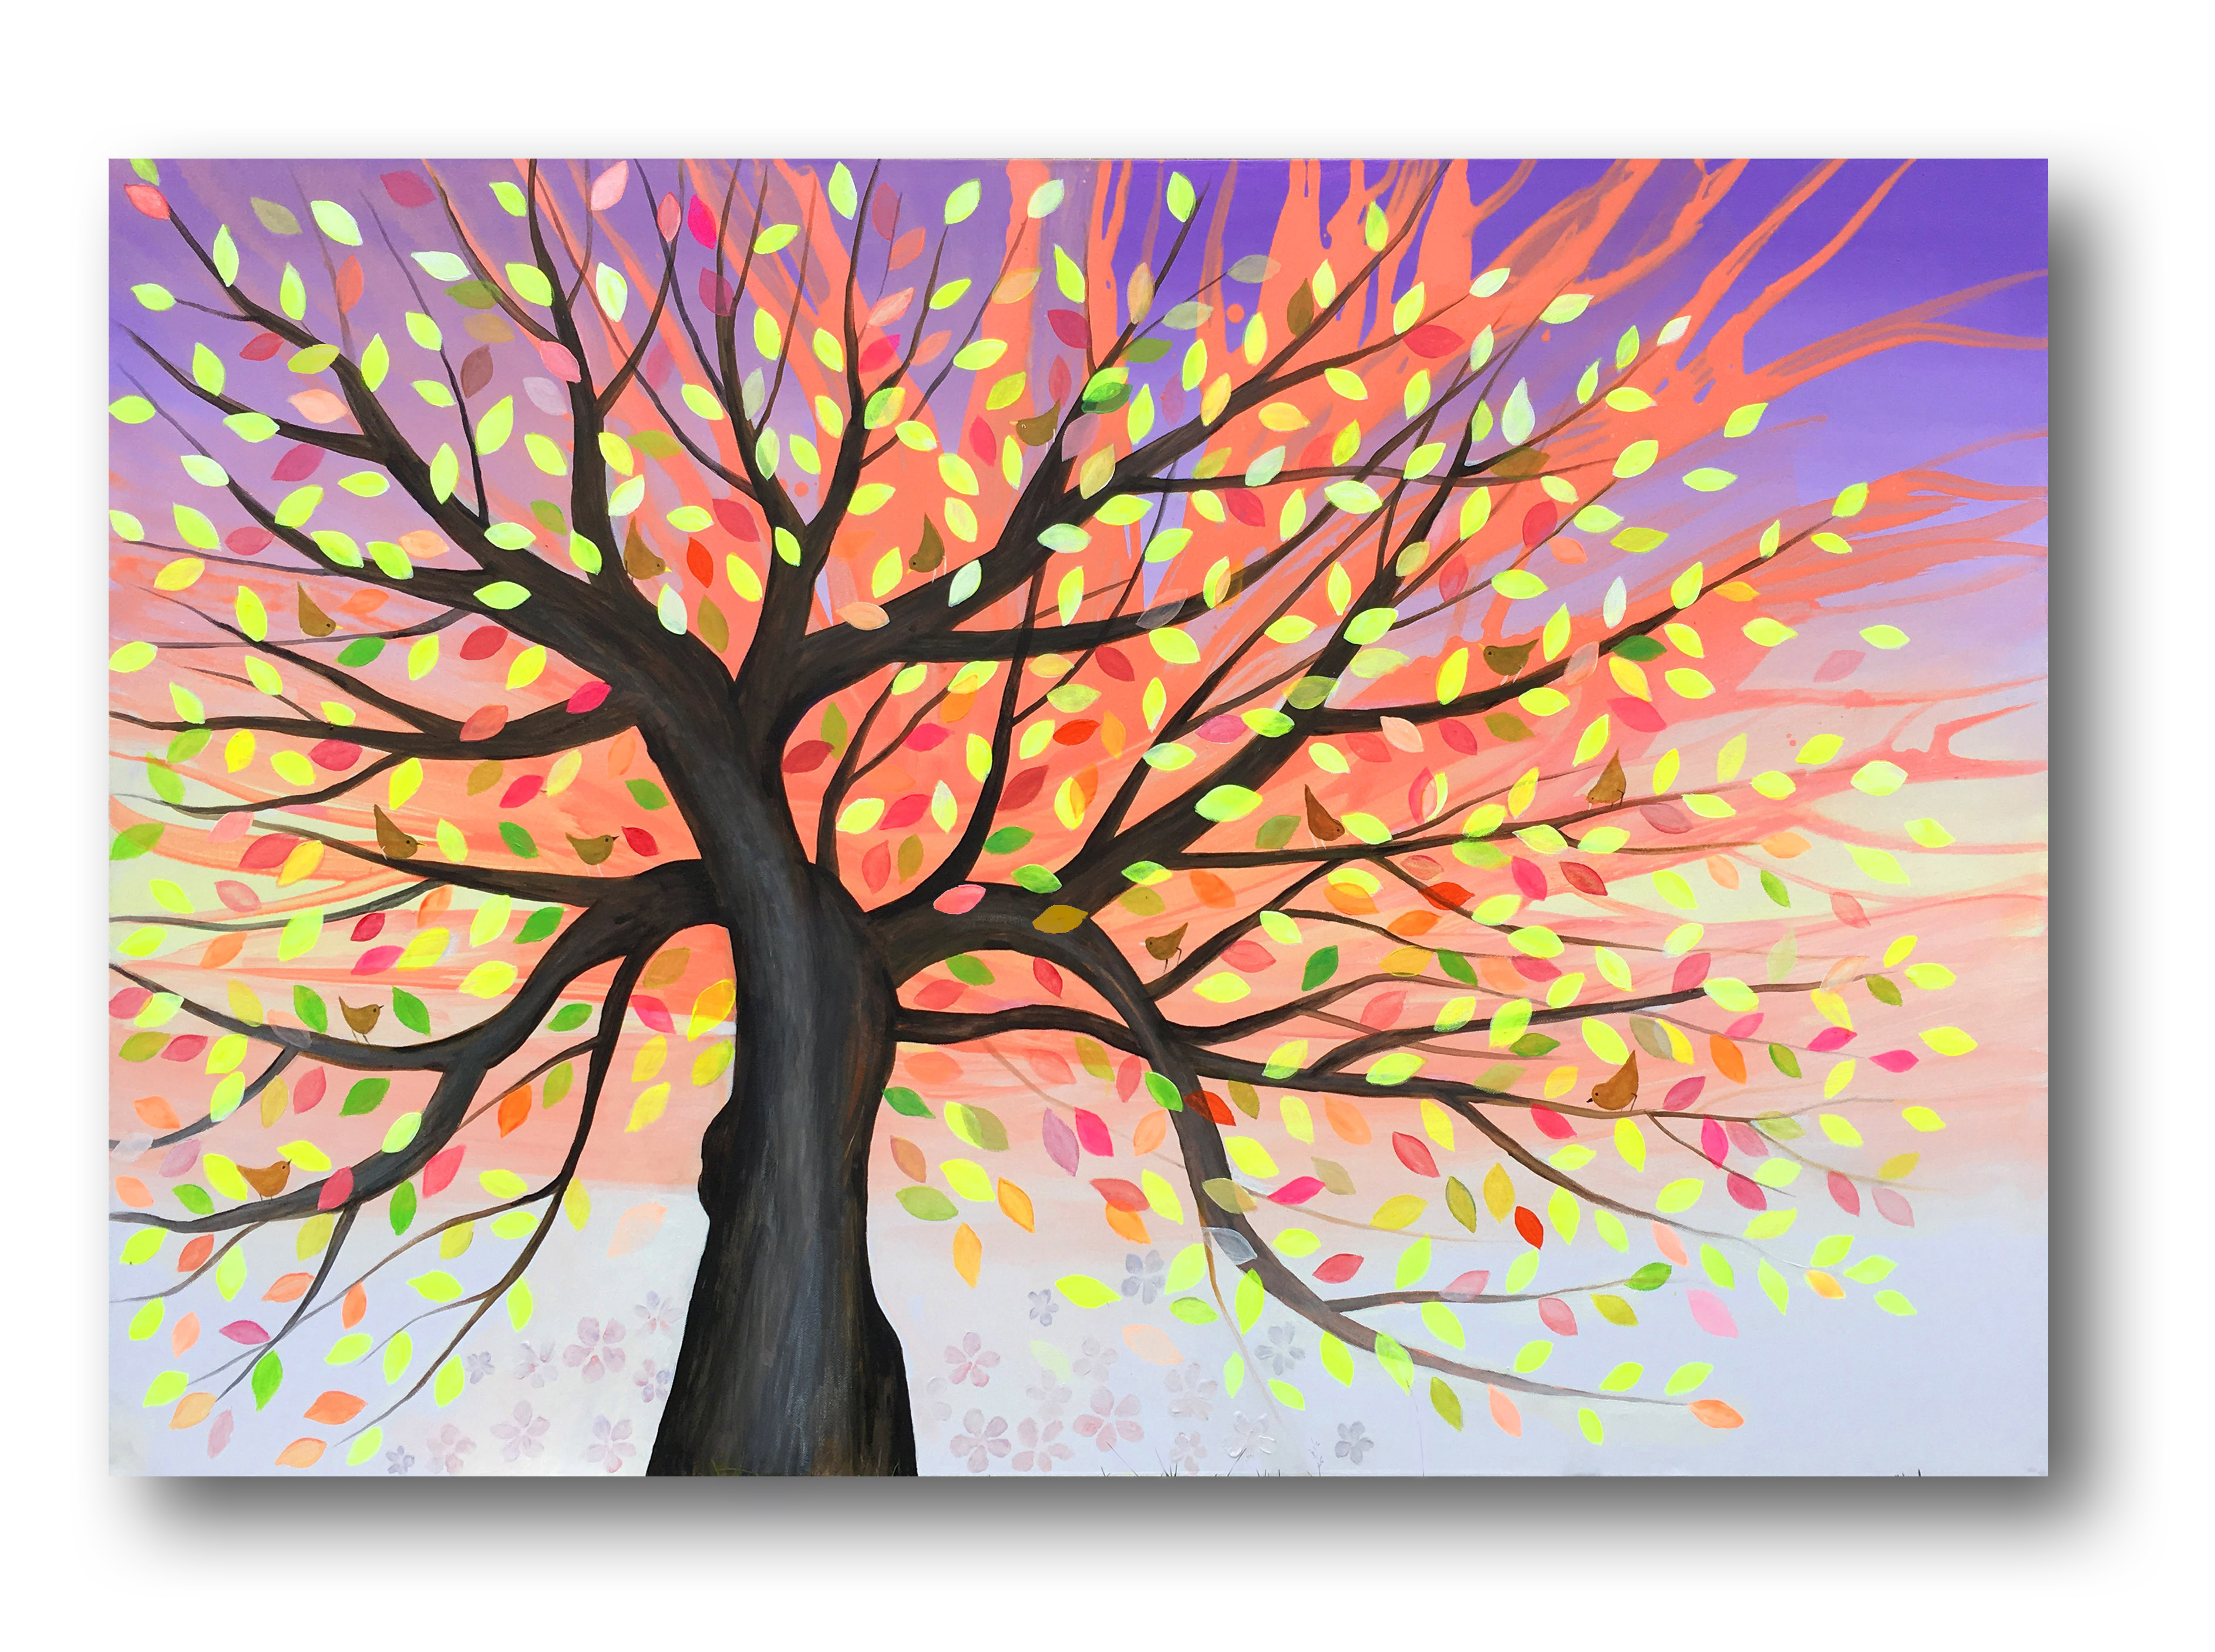 Tree216__Acrylic on stretched canvas__ 60x36 inches